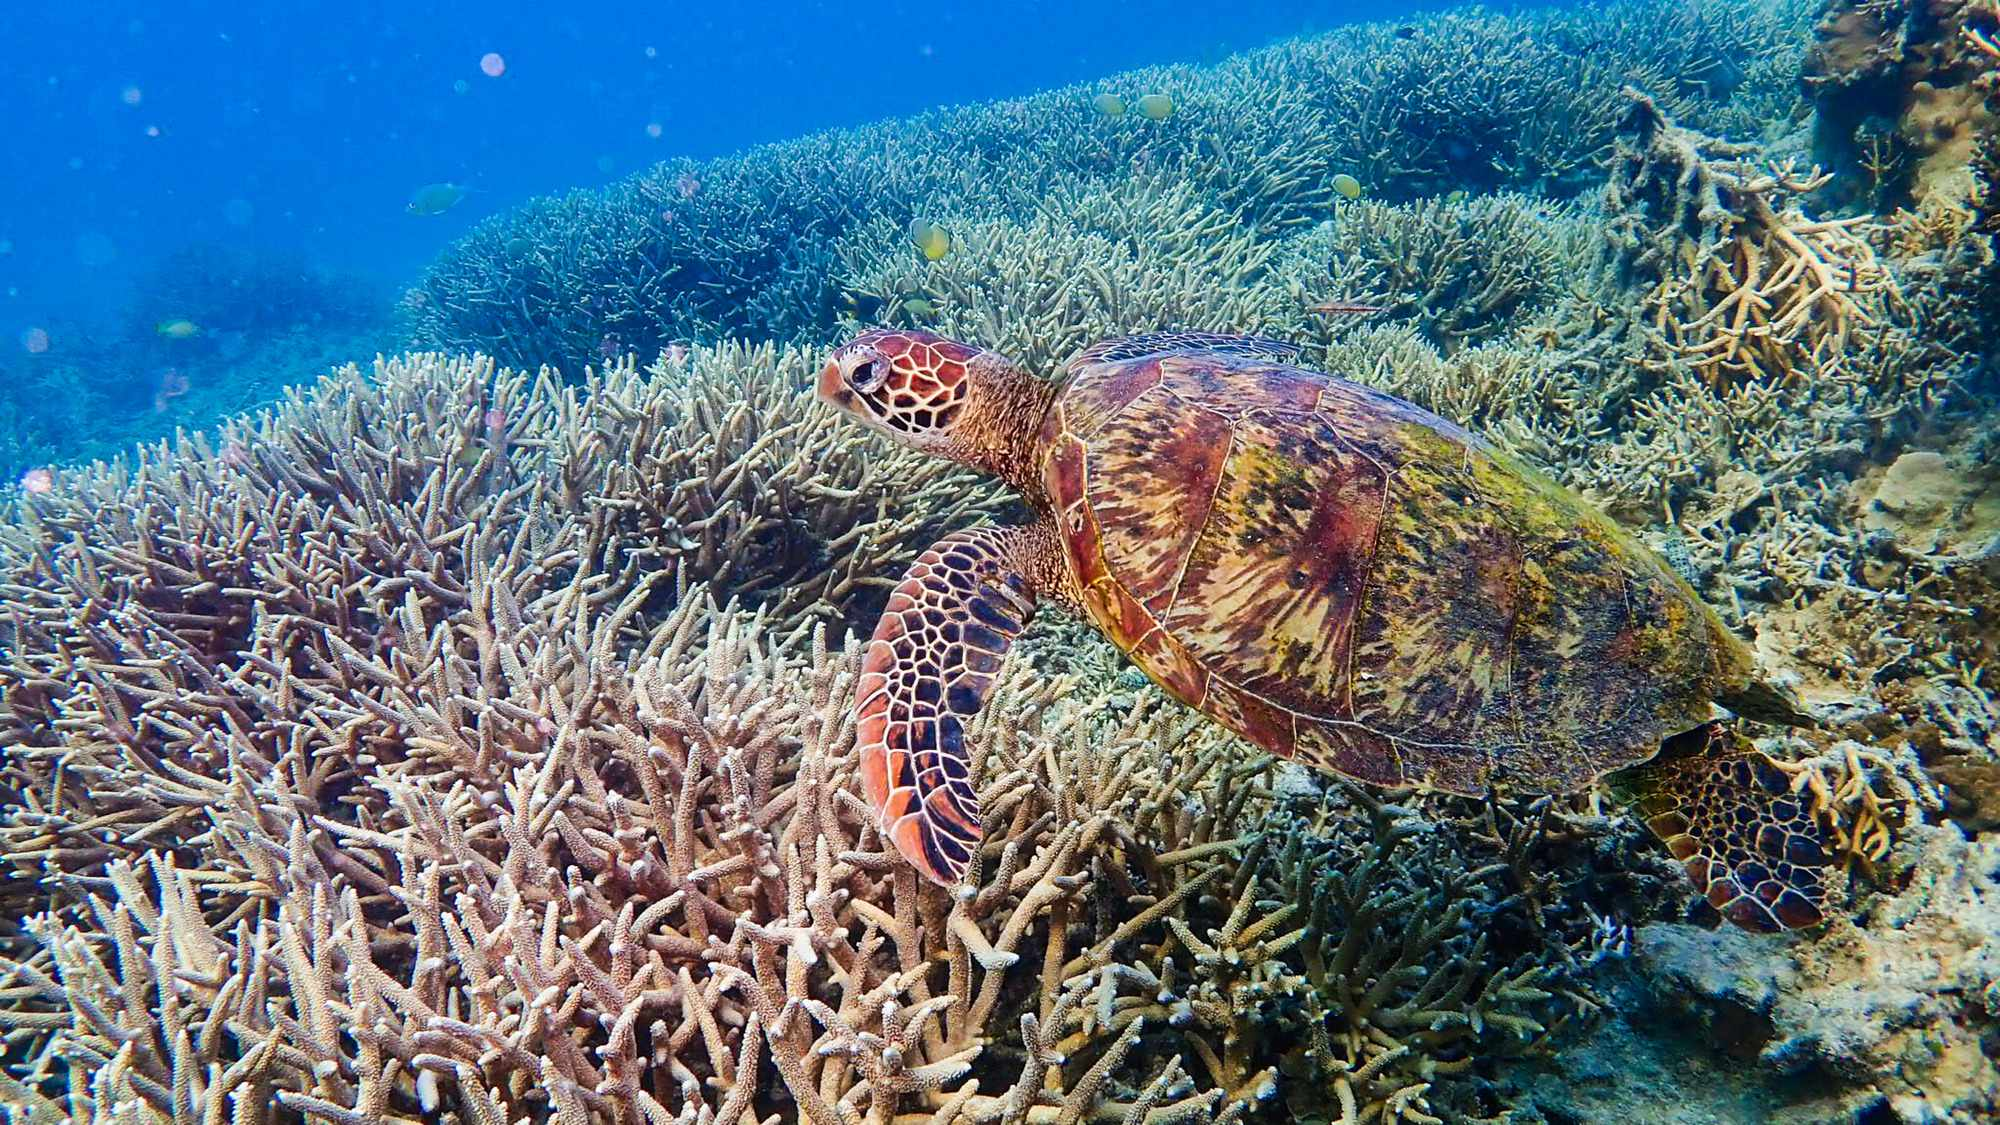 Green turtle. © Ellis Roberts/BBC